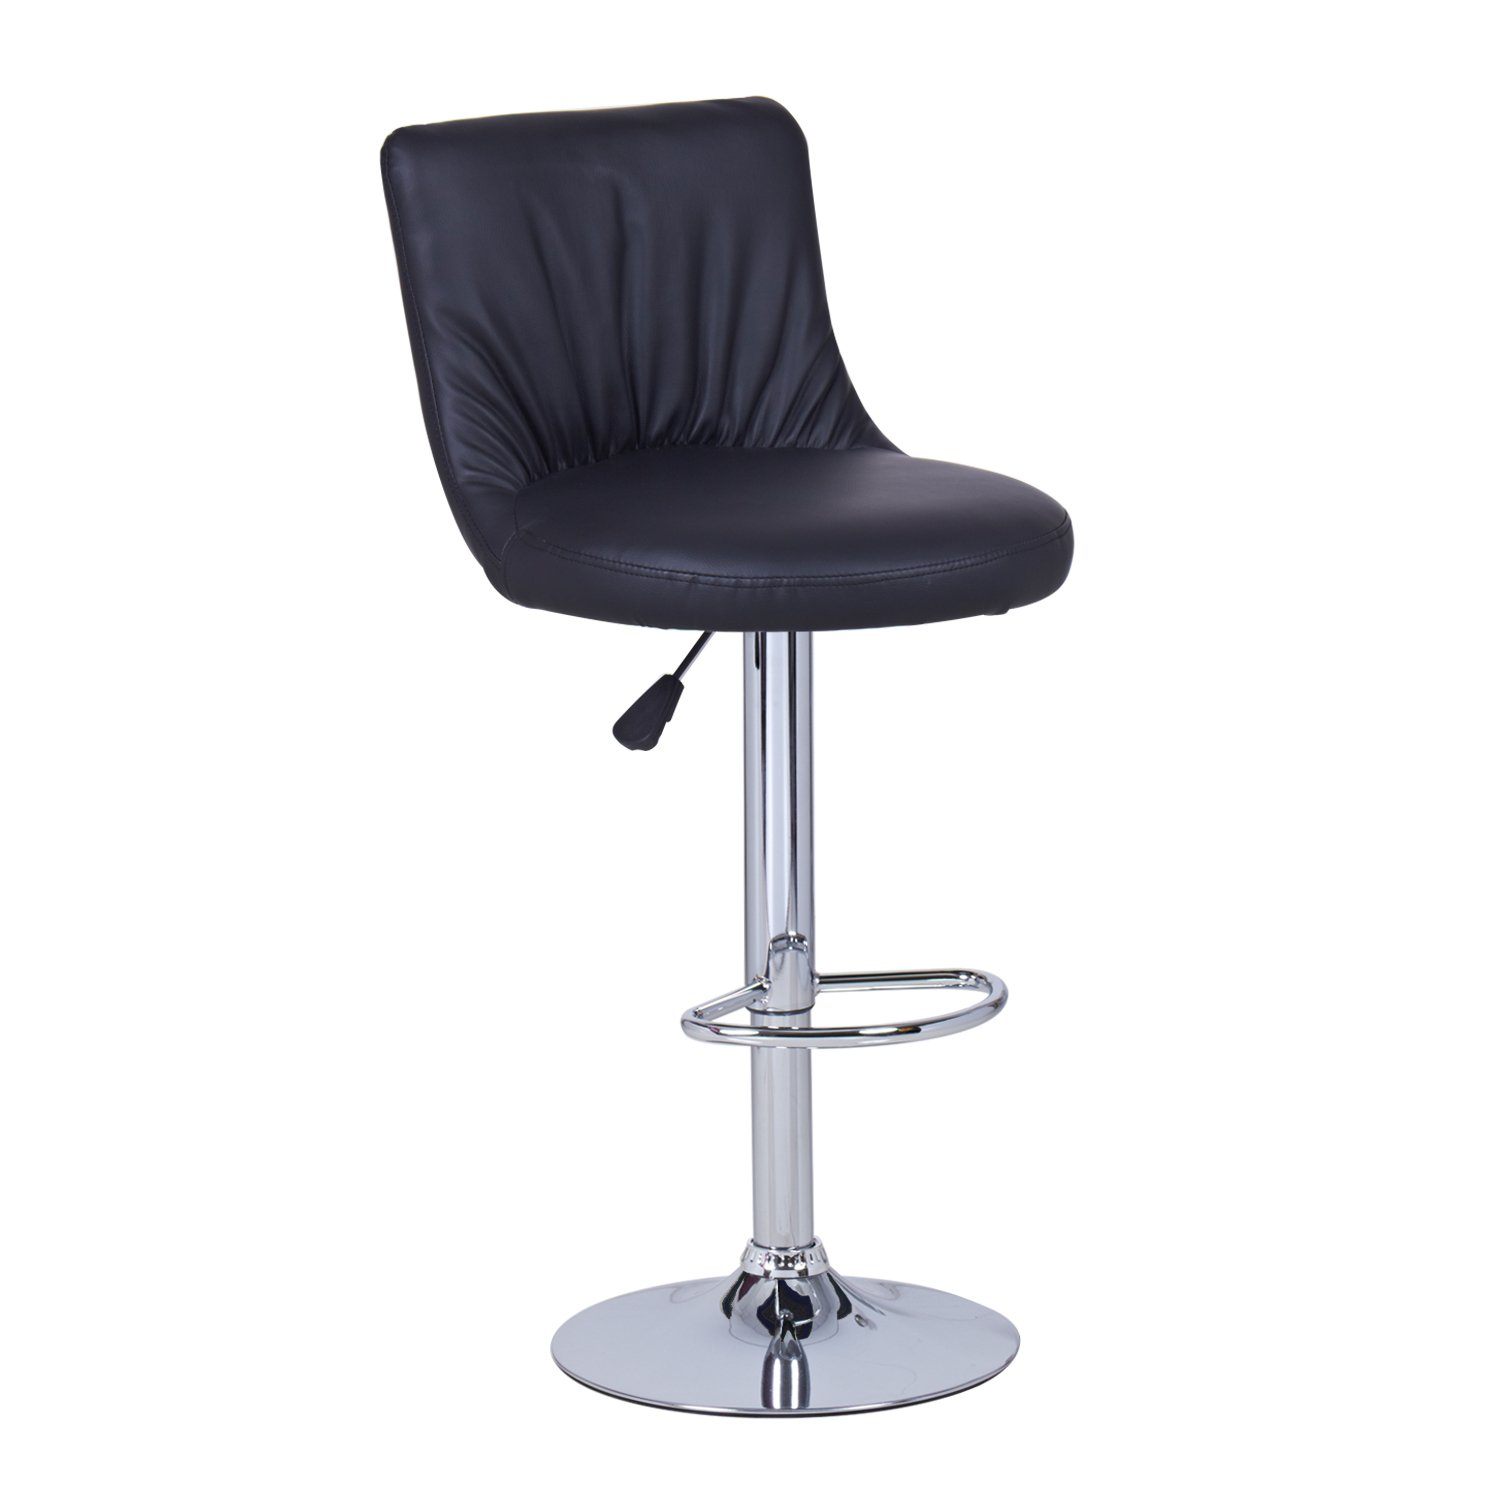 Joveco JCH44-2 Adjustable Oval Seat Bar Stools